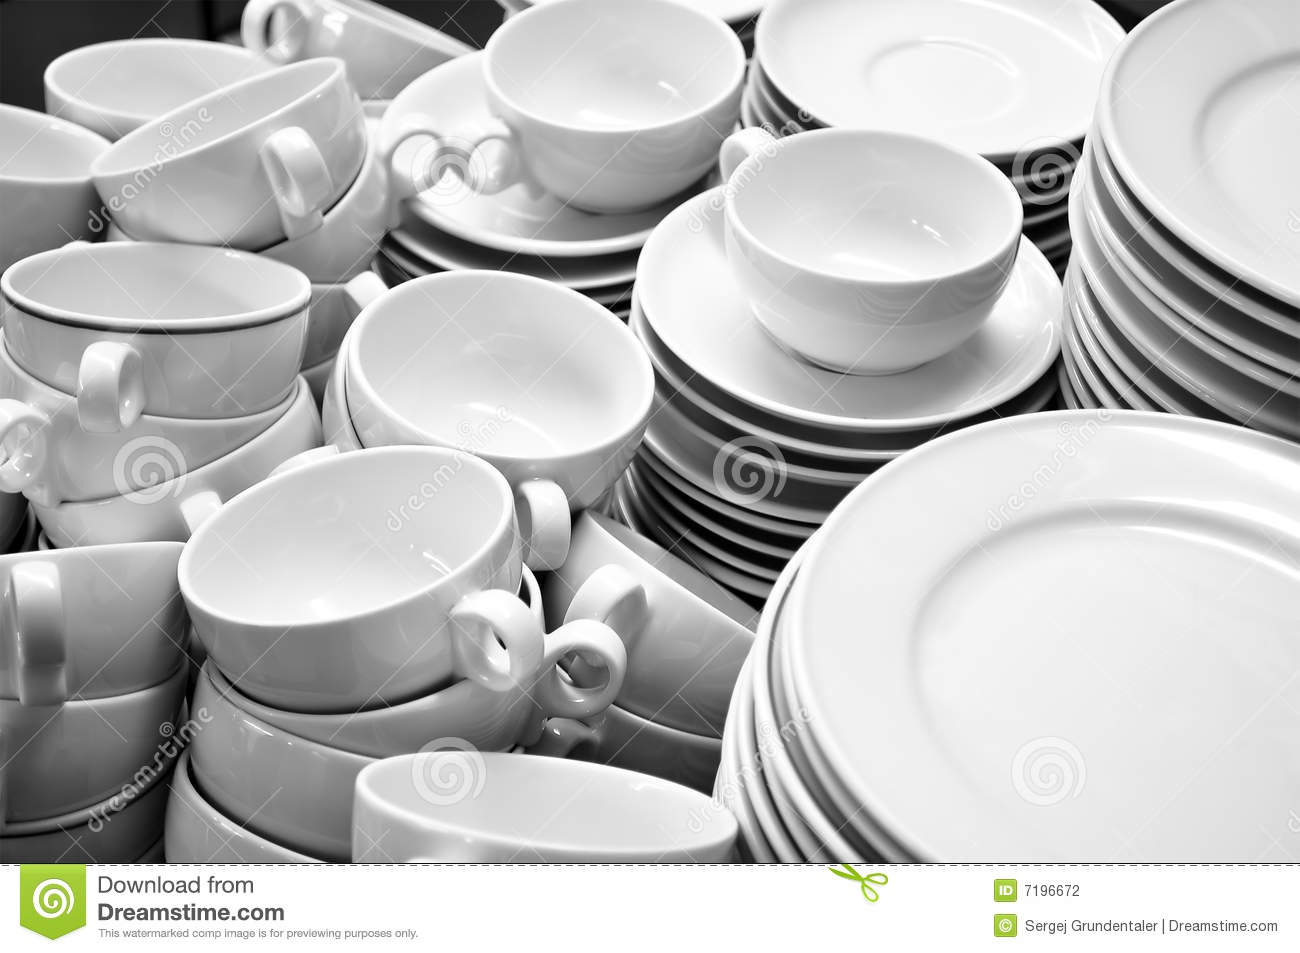 what is crockery